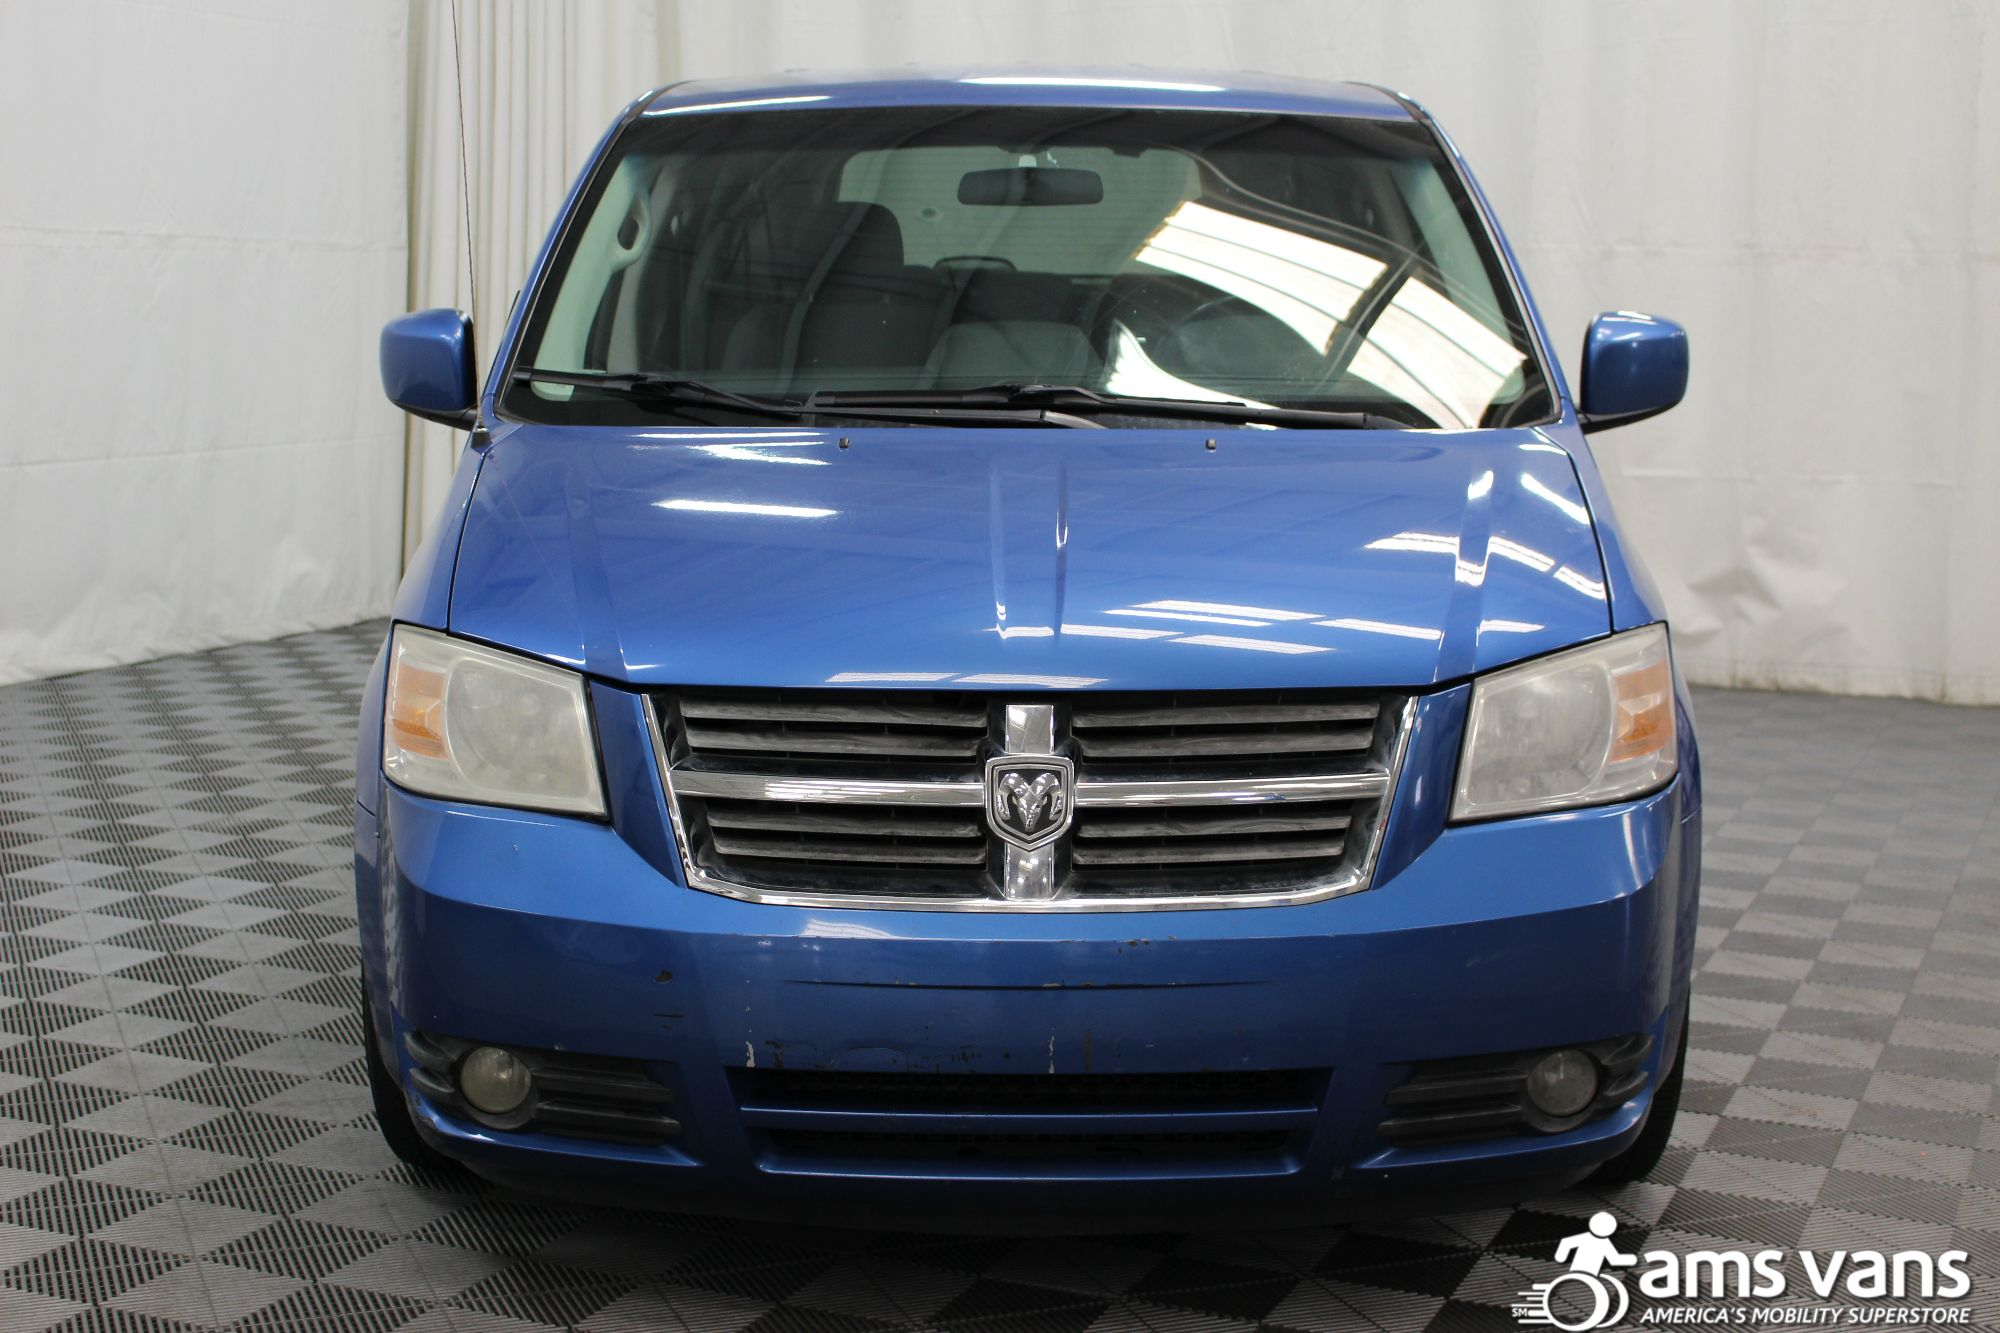 2008 Dodge Grand Caravan SXT Wheelchair Van For Sale #7